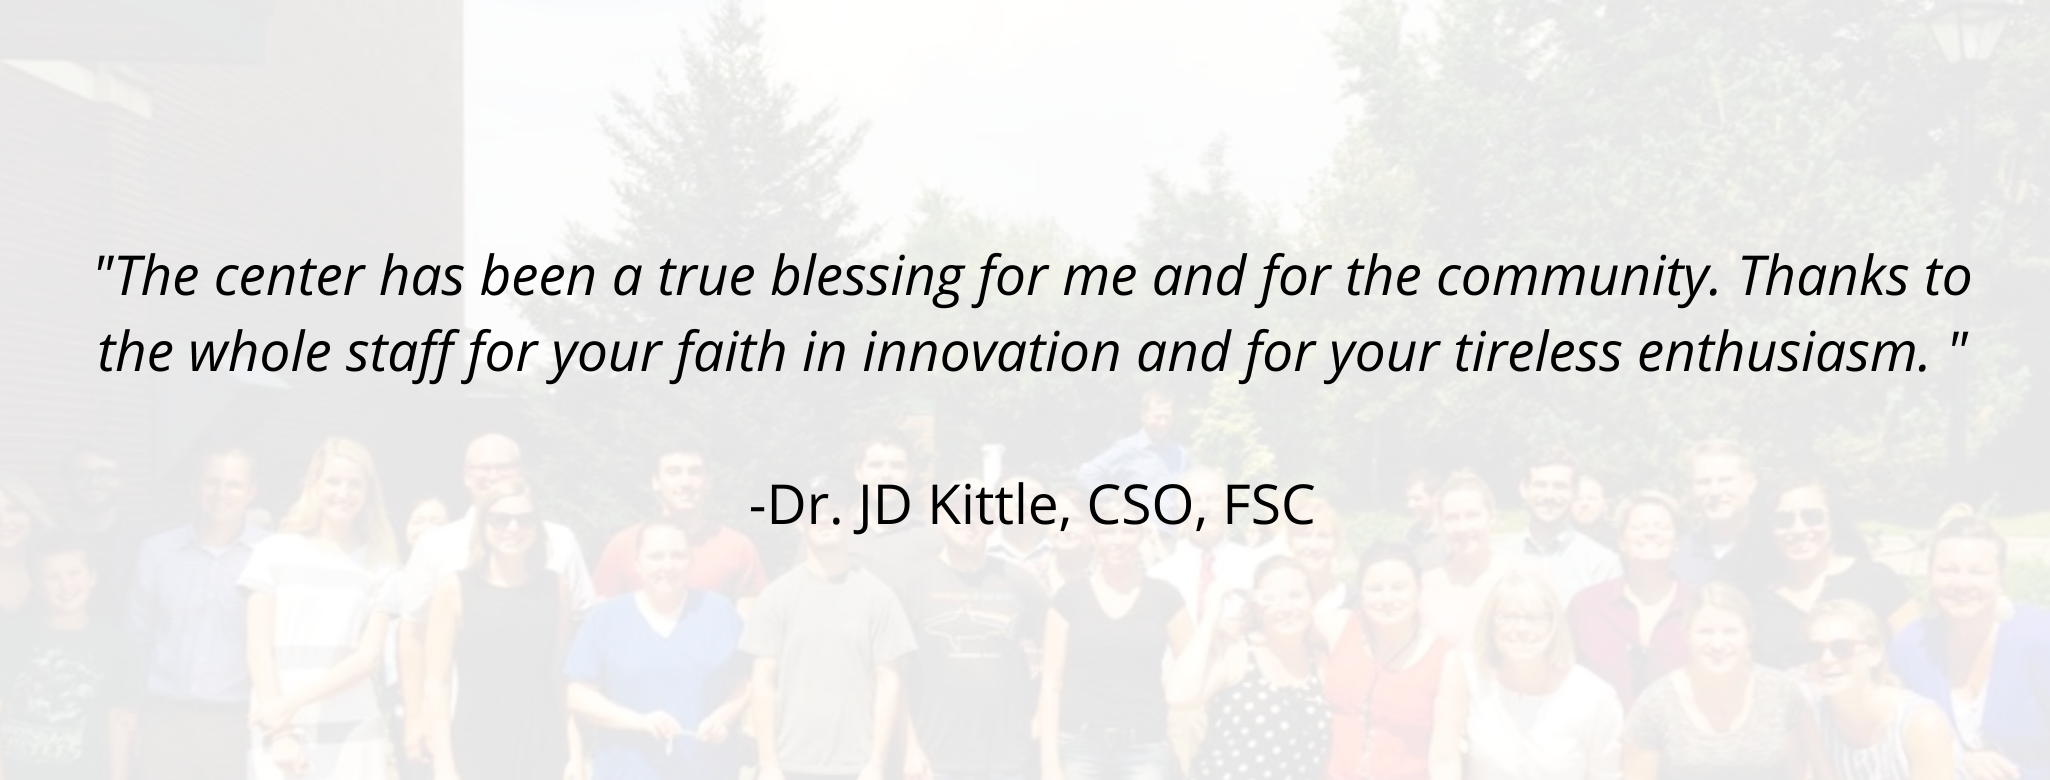 """""""The center has been a true blessing for me and for the community. Thanks to the whole staff for your faith in innovation and for your tireless enthusiasm. """"  -Dr. JD Kittle, CSO, FSC"""